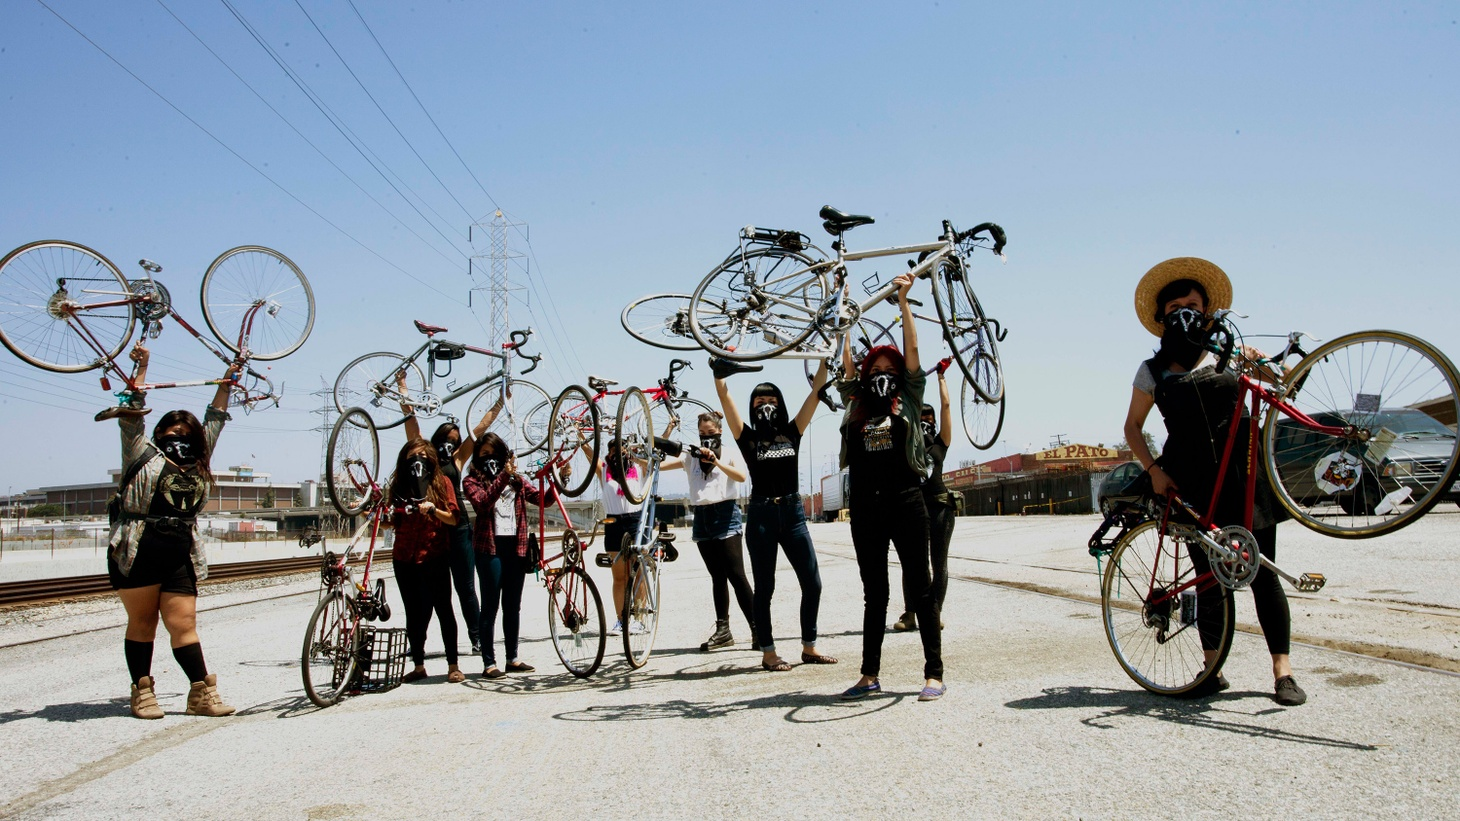 In East LA, young women of color have formed a cycling group called Ovarian Psycos. Many of them are trying to recover from trauma and abuse. The collective has become a safe space for them to support each other. But they've been criticized for being too aggressive and even violent.